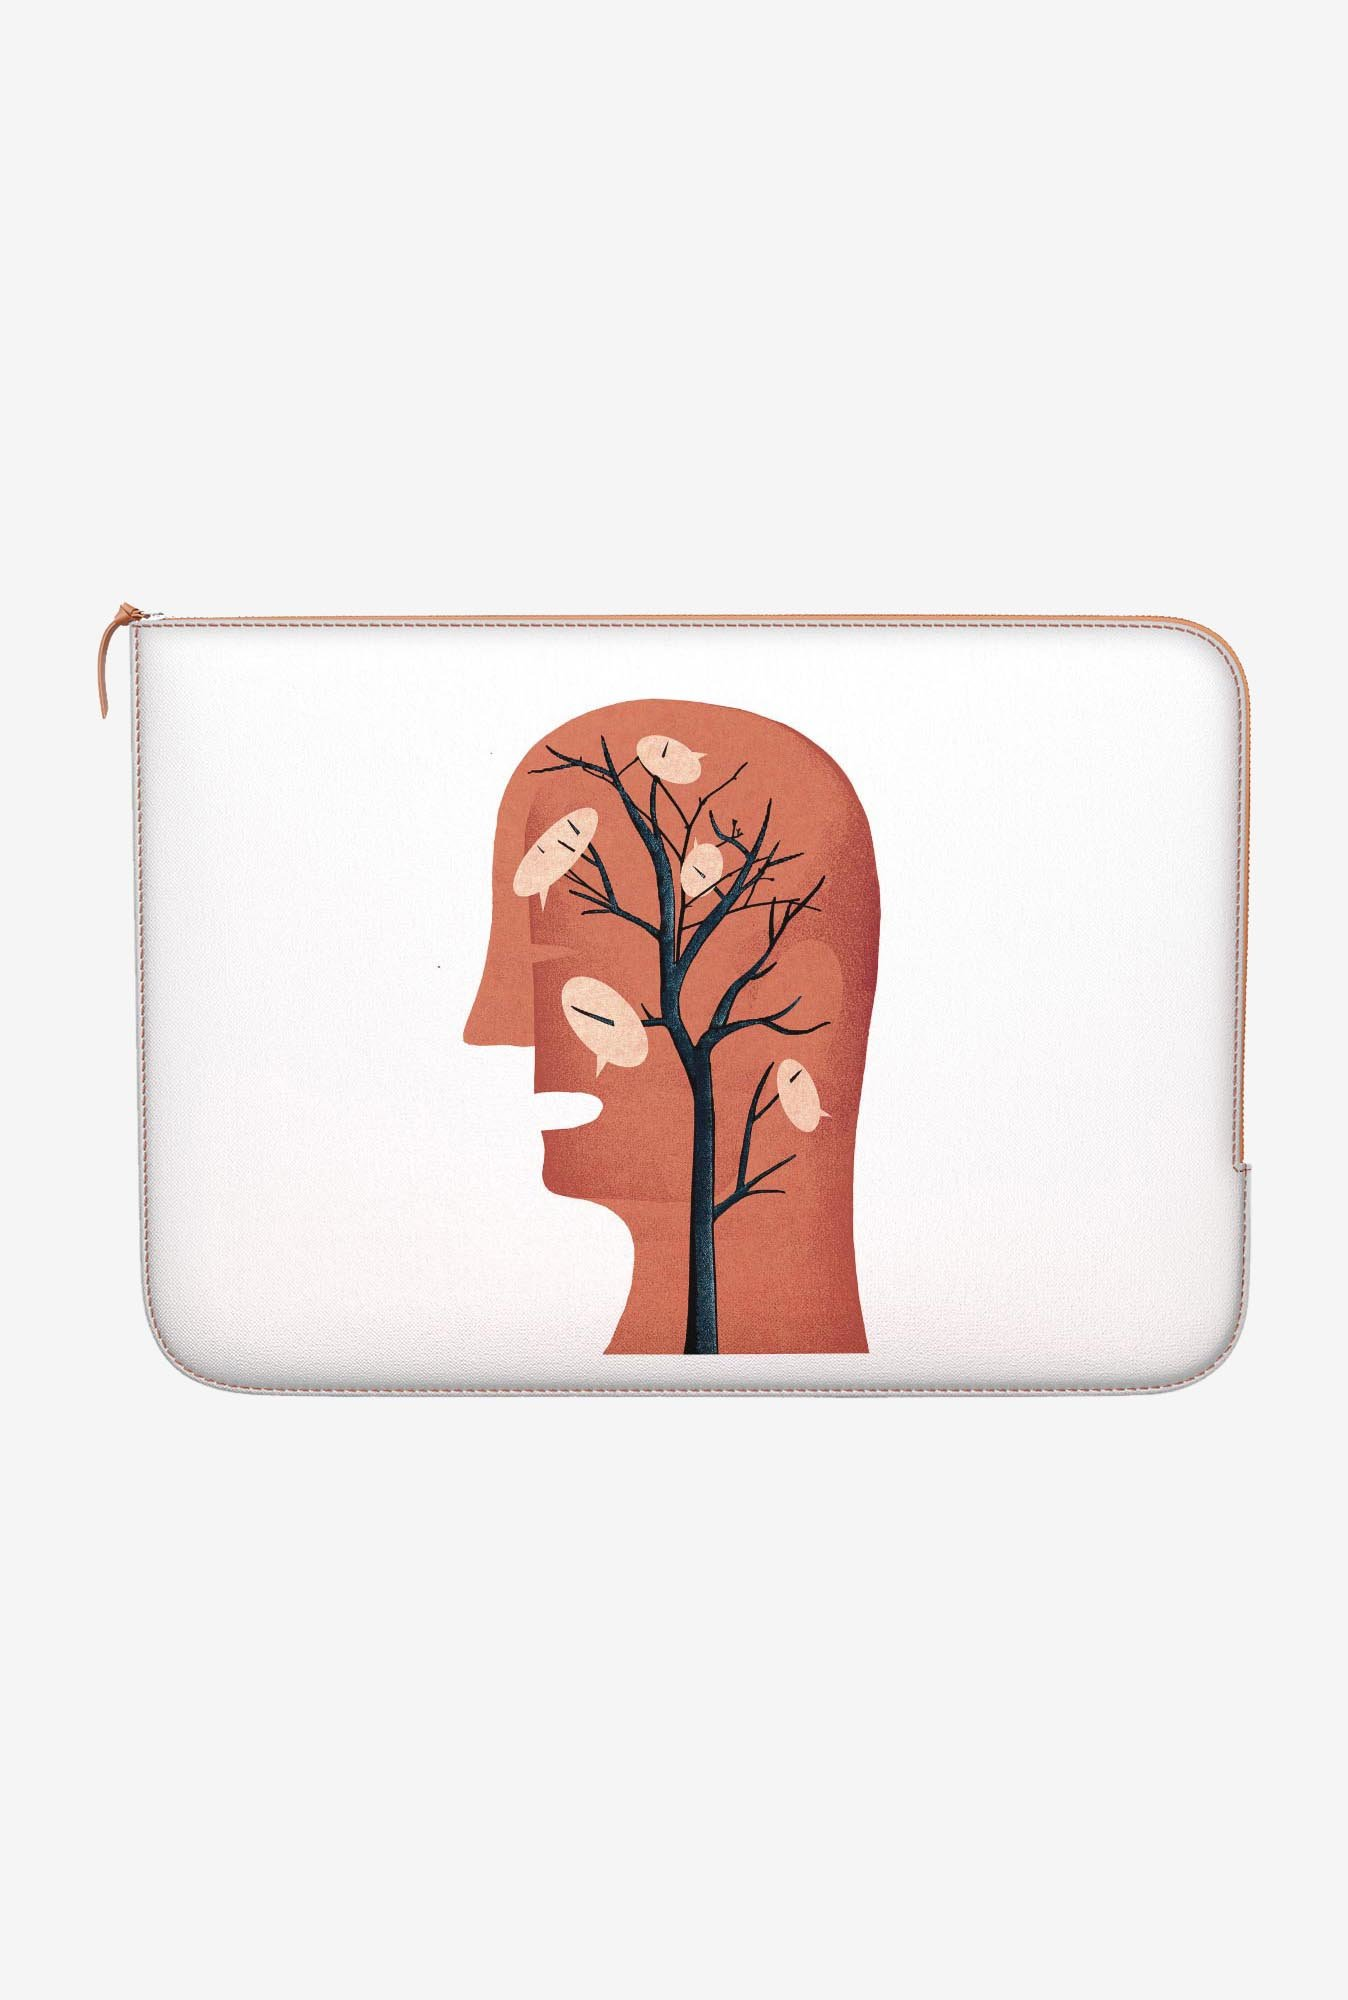 DailyObjects Unspoken Thought MacBook Pro 15 Zippered Sleeve